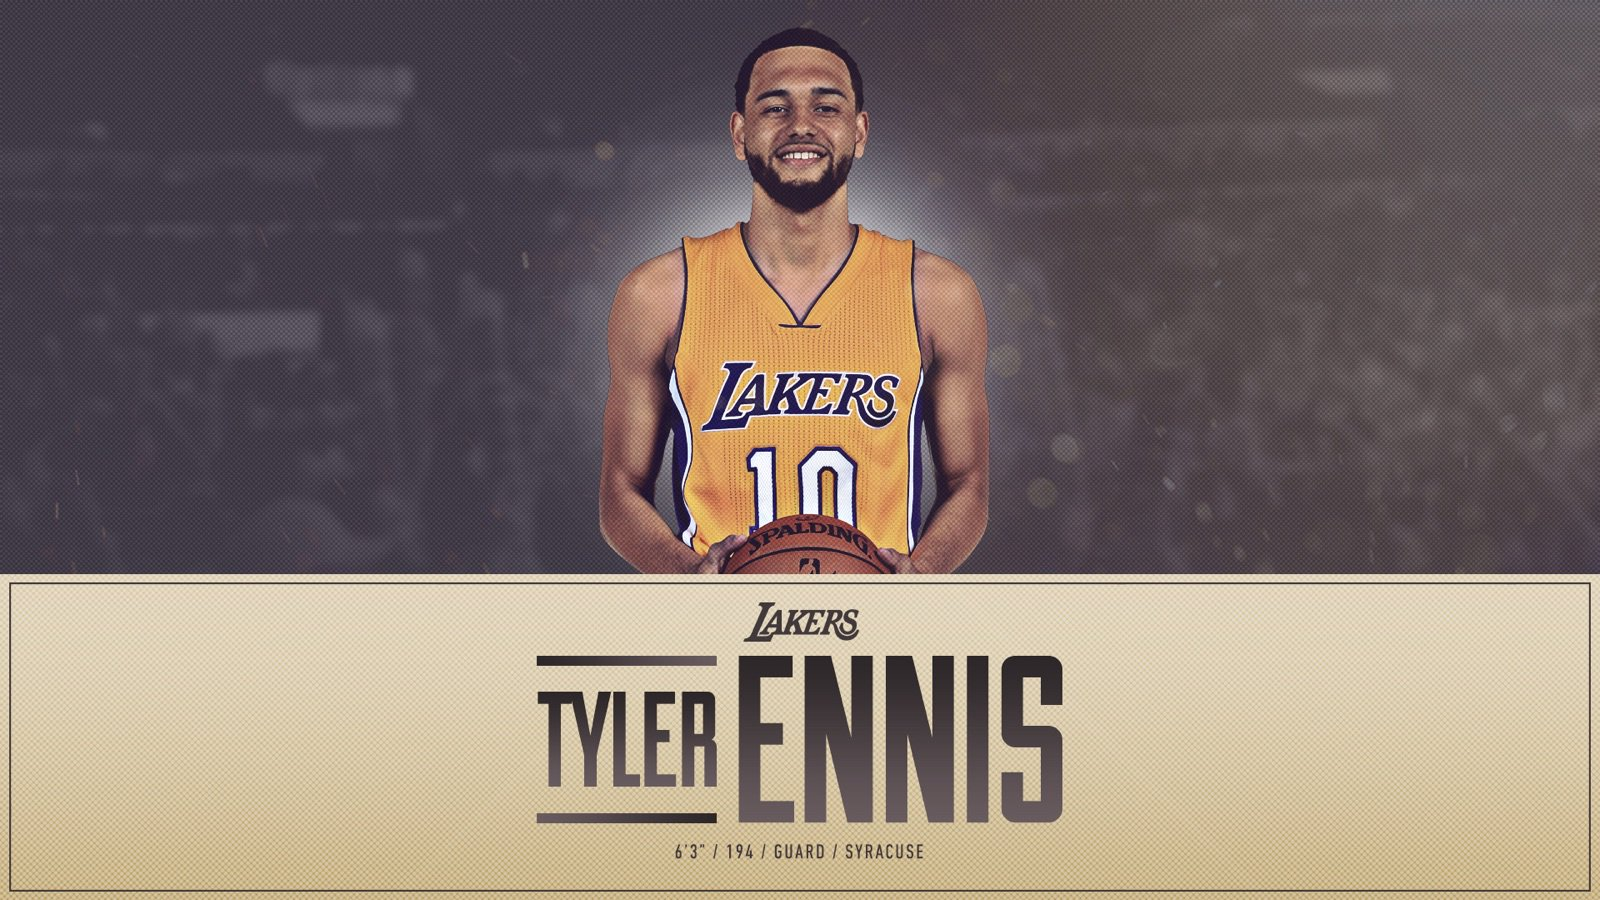 Looking forward to more of this from @TylerEnnis next season! https://t.co/Uo2wTLE8RL